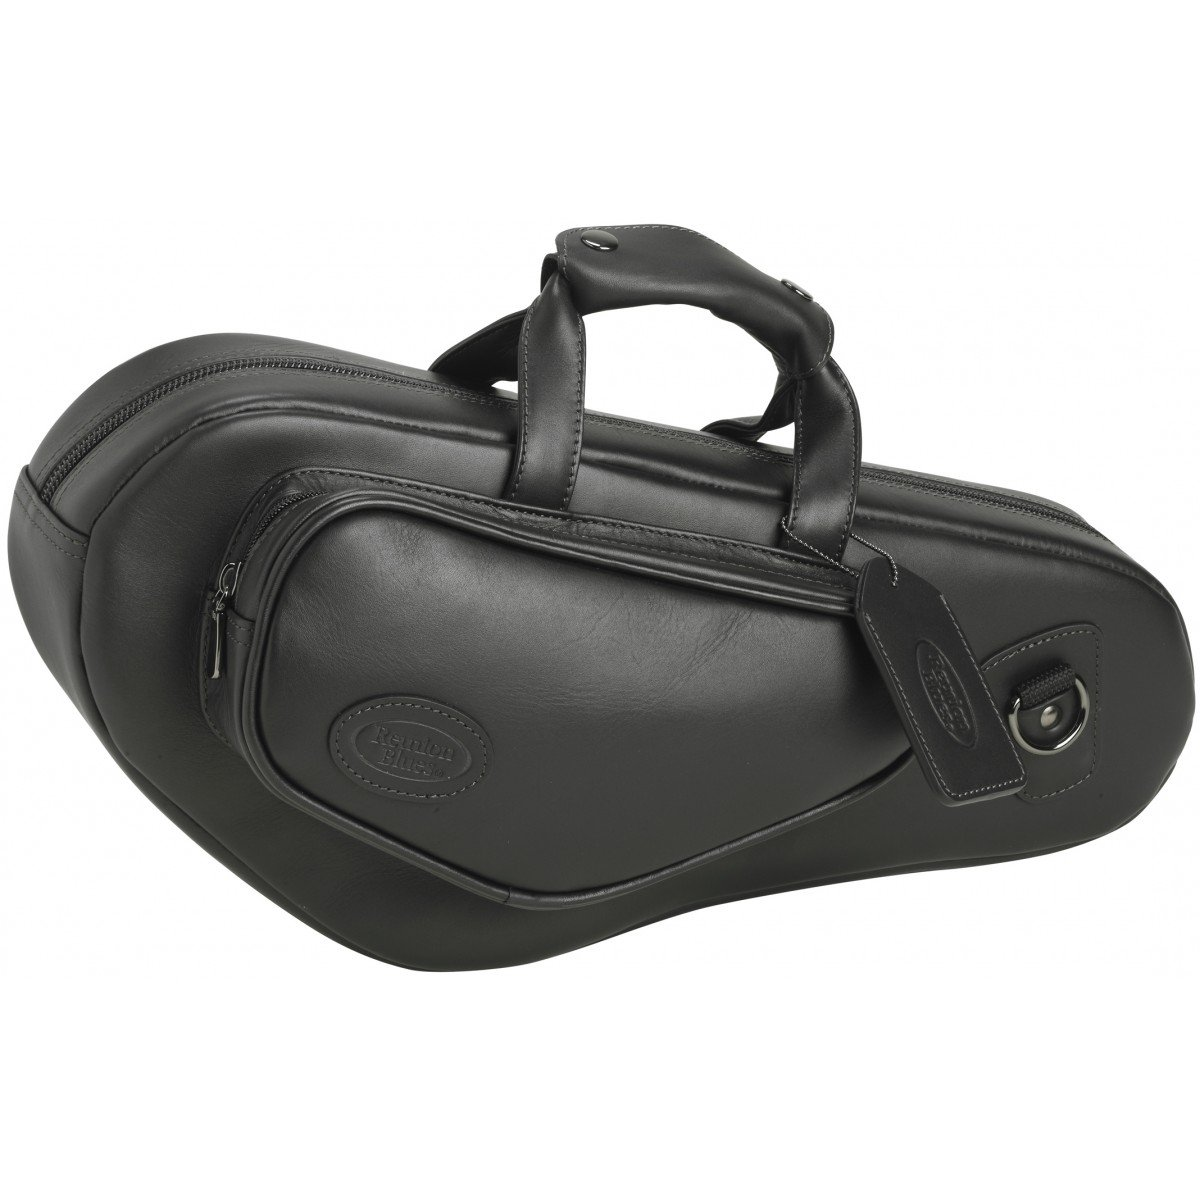 Reunion Blues Curved Soprano Saxophone Bag, Chestnut Brown Leather Ace Products Group 706-15-34